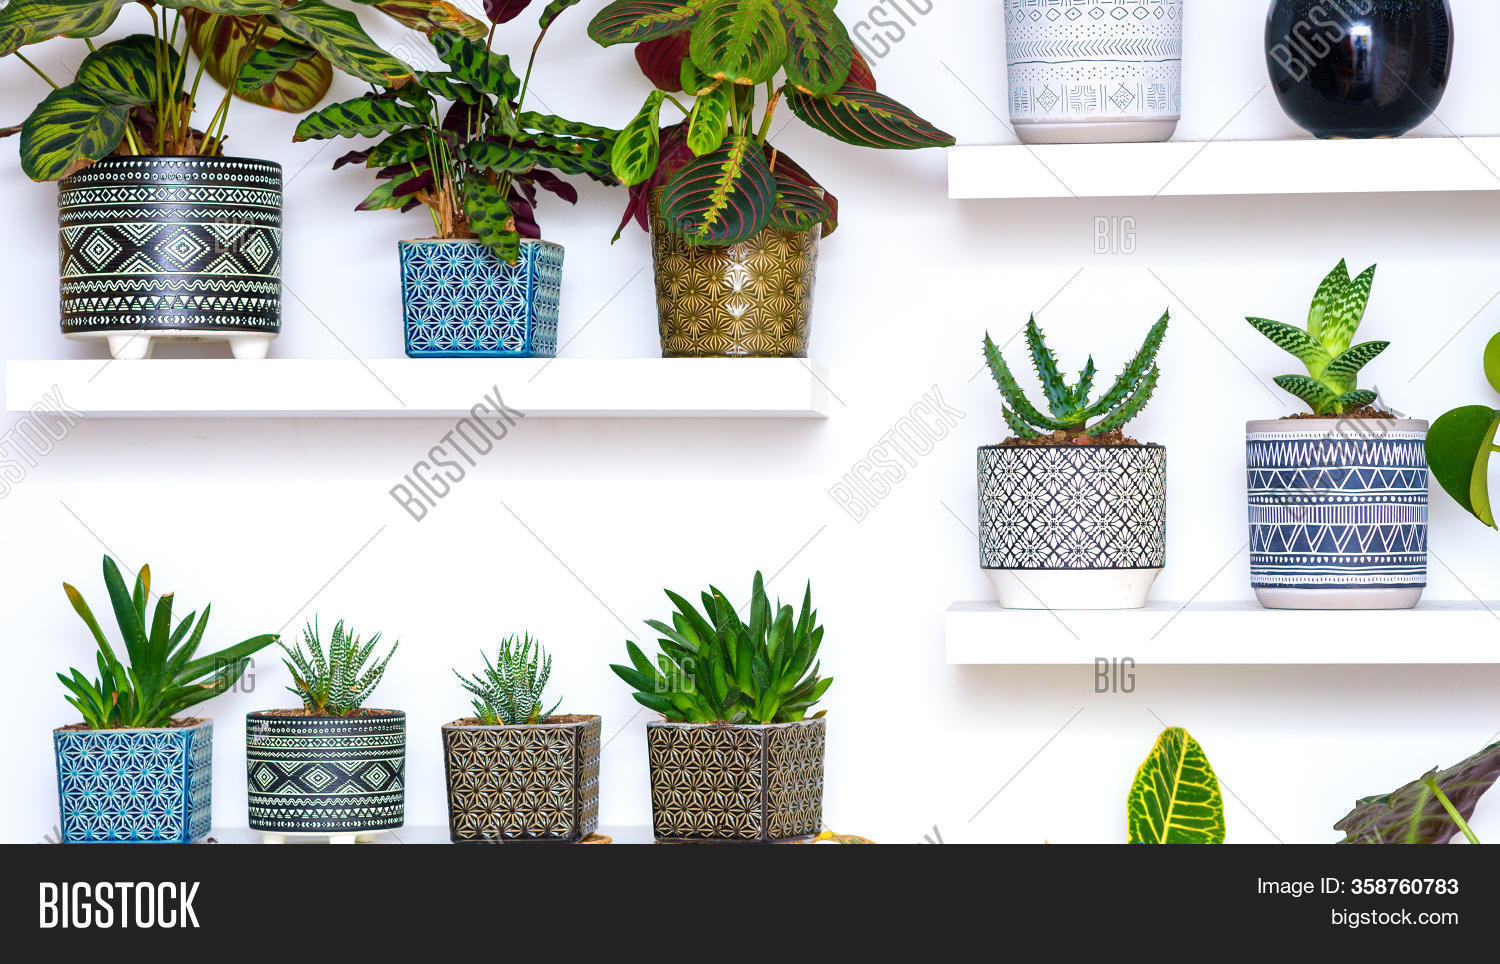 Home Gardening Banner Image Photo Free Trial Bigstock